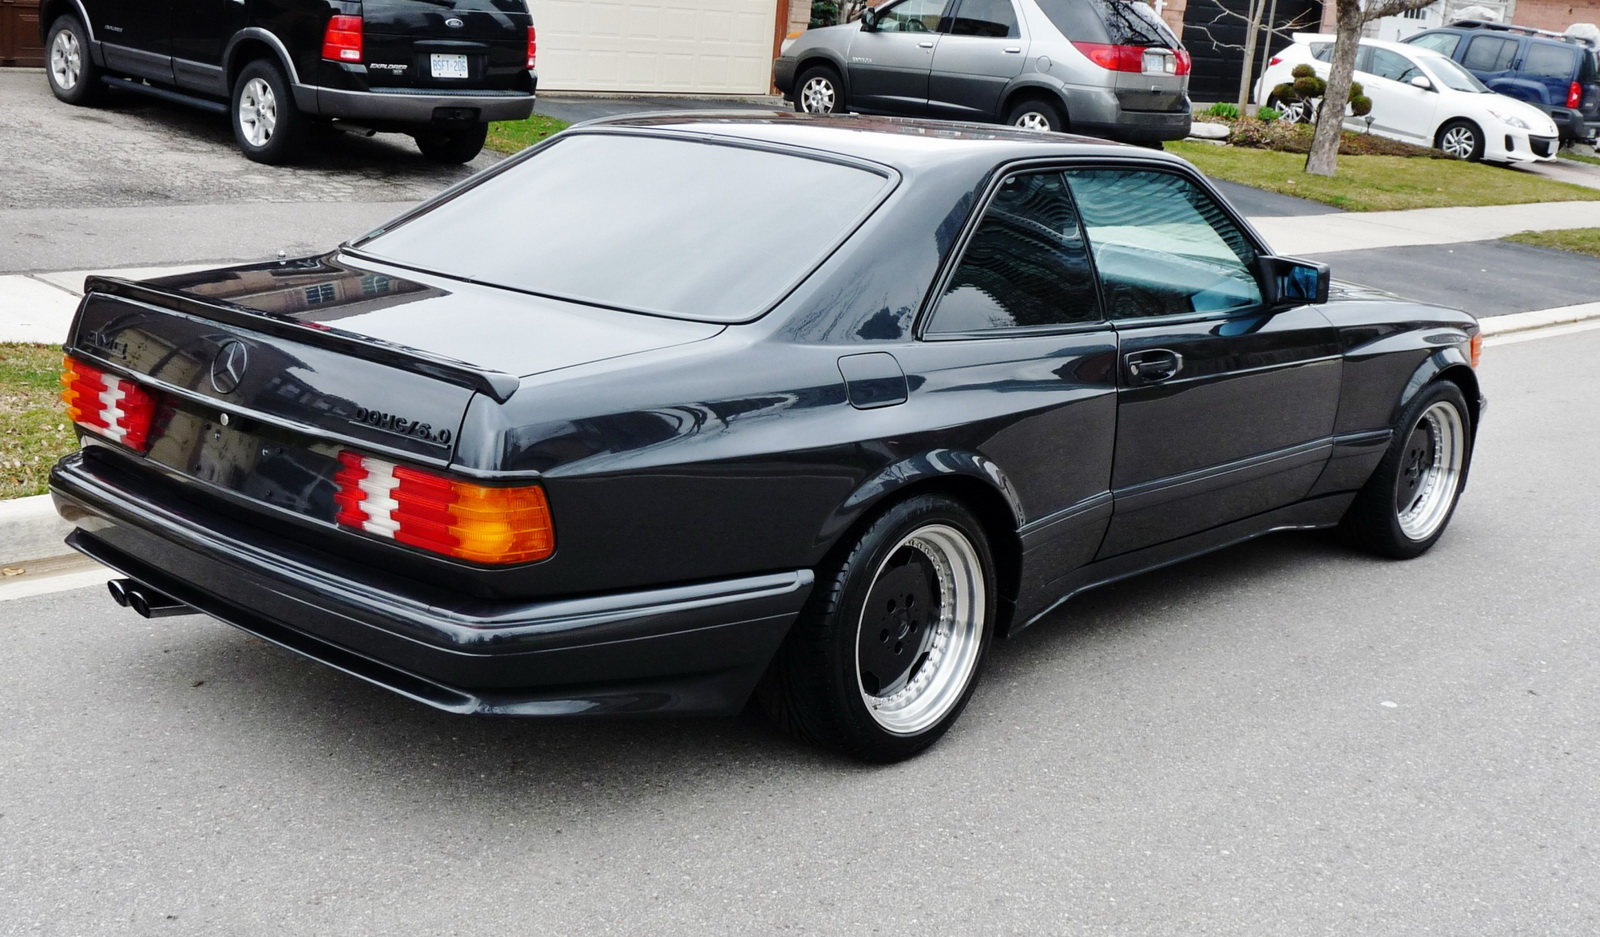 Mercedes benz 560 sec 6 0 amg is a box flared bad ss from for Mercedes benz 560 sec amg for sale